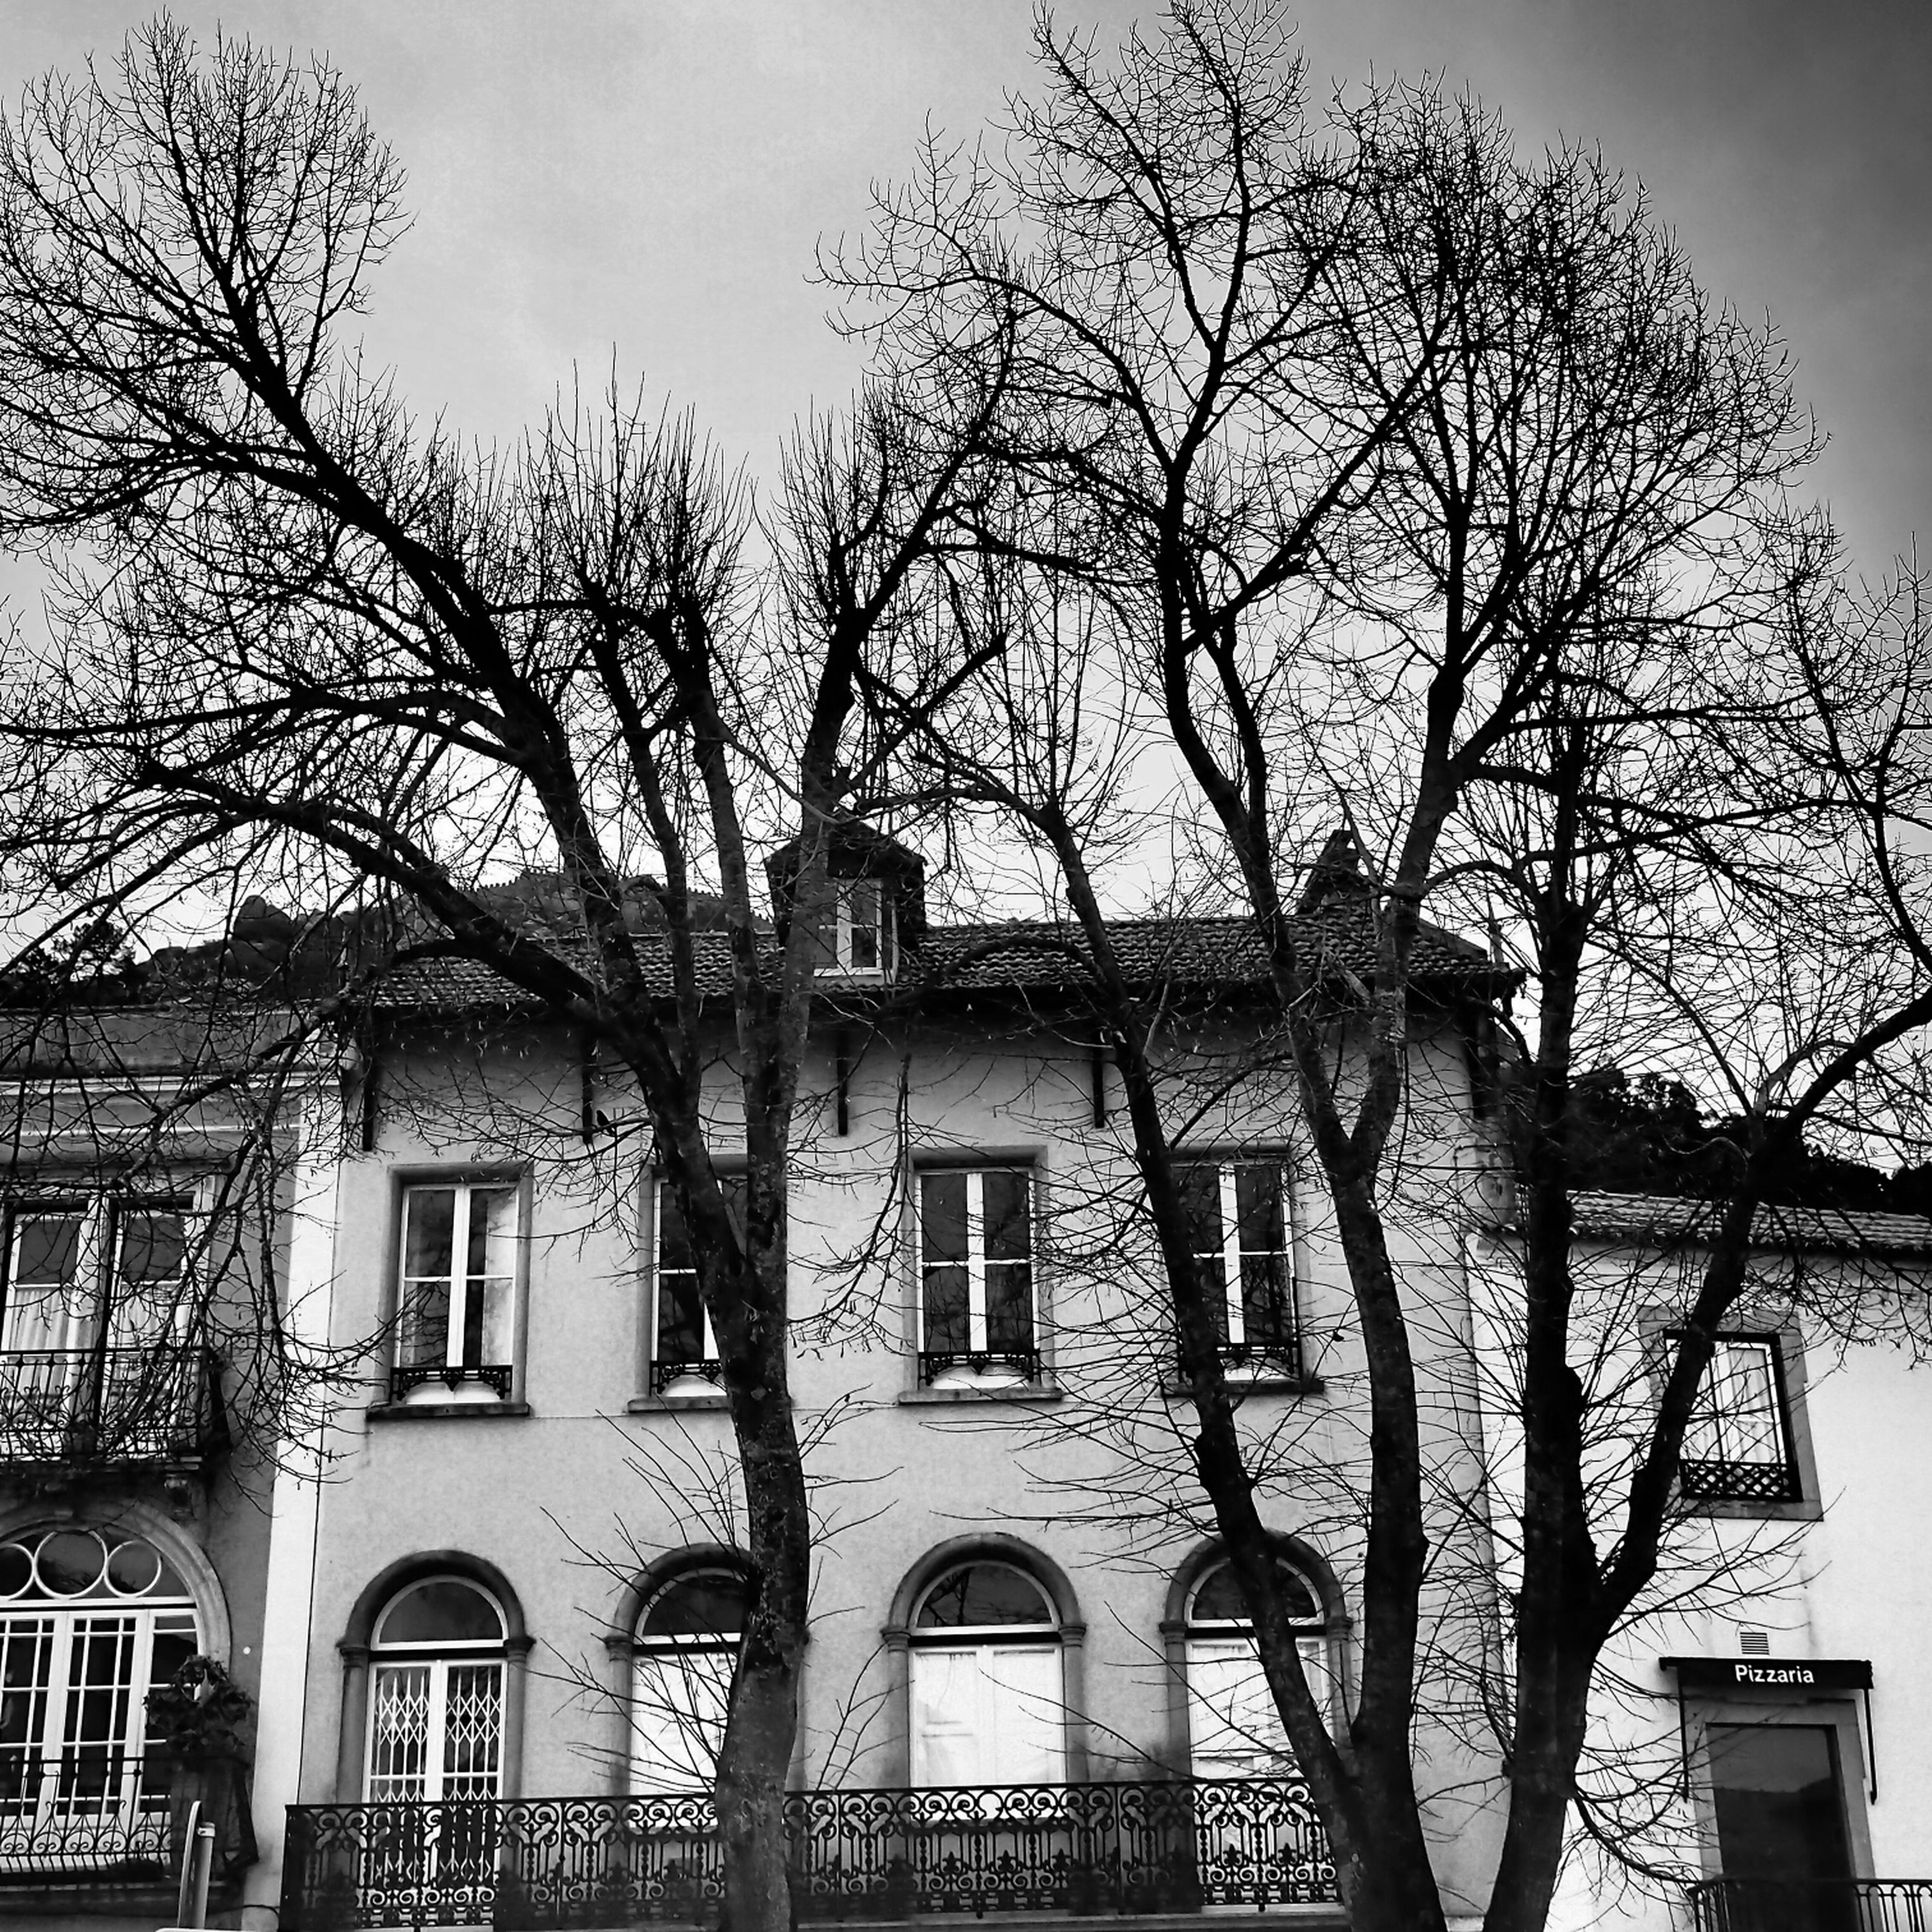 architecture, building exterior, built structure, bare tree, tree, branch, sky, window, residential building, low angle view, city, residential structure, building, house, day, railing, outdoors, no people, facade, tree trunk